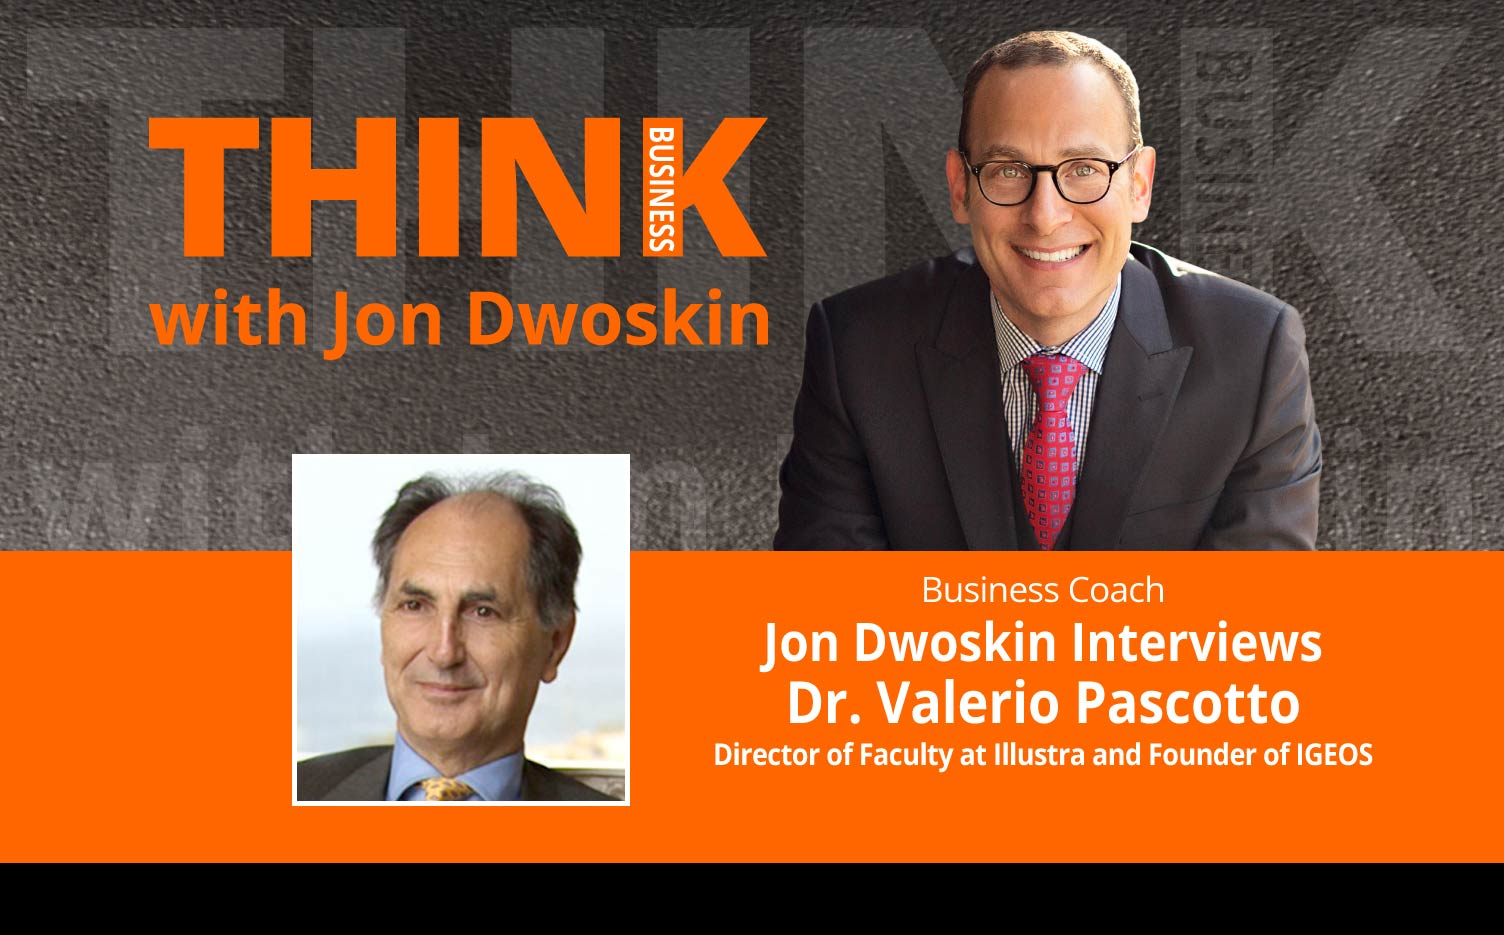 THINK Business Podcast: Jon Dwoskin Interviews Dr. Valerio Pascotto, Director of Faculty at Illustra and Founder of IGEOS